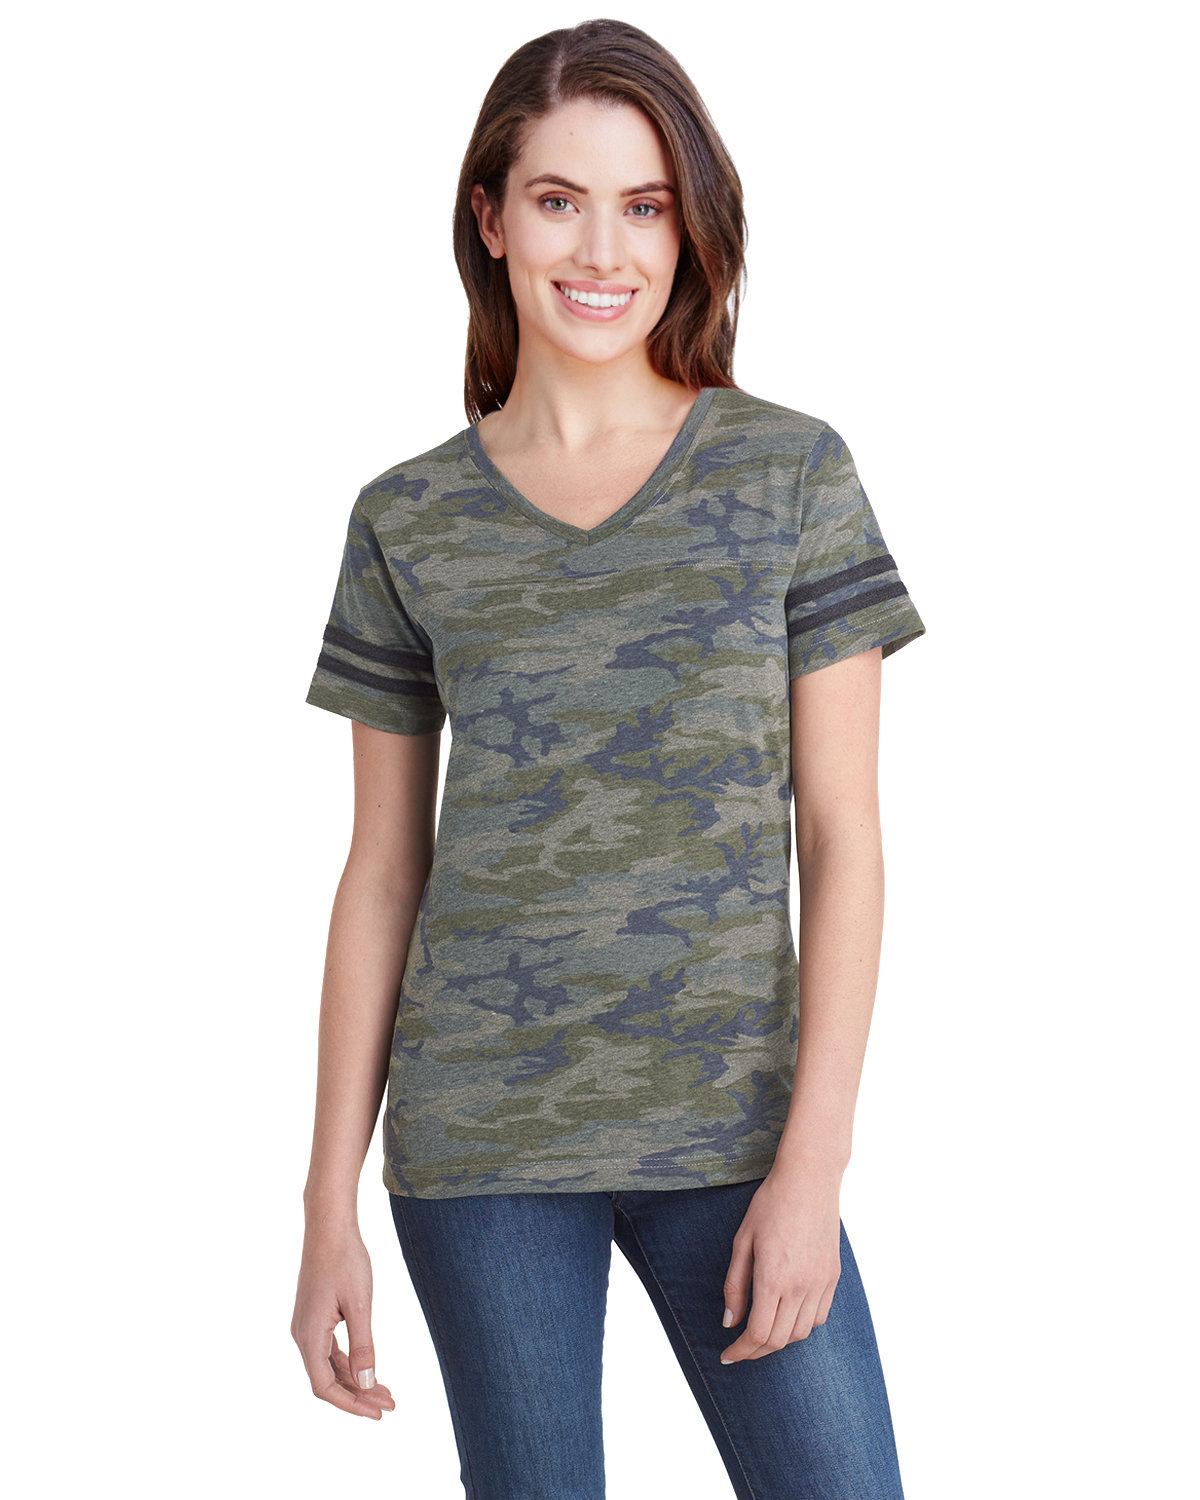 LAT Ladies' Football T-Shirt VN CAMO/ VN SMK